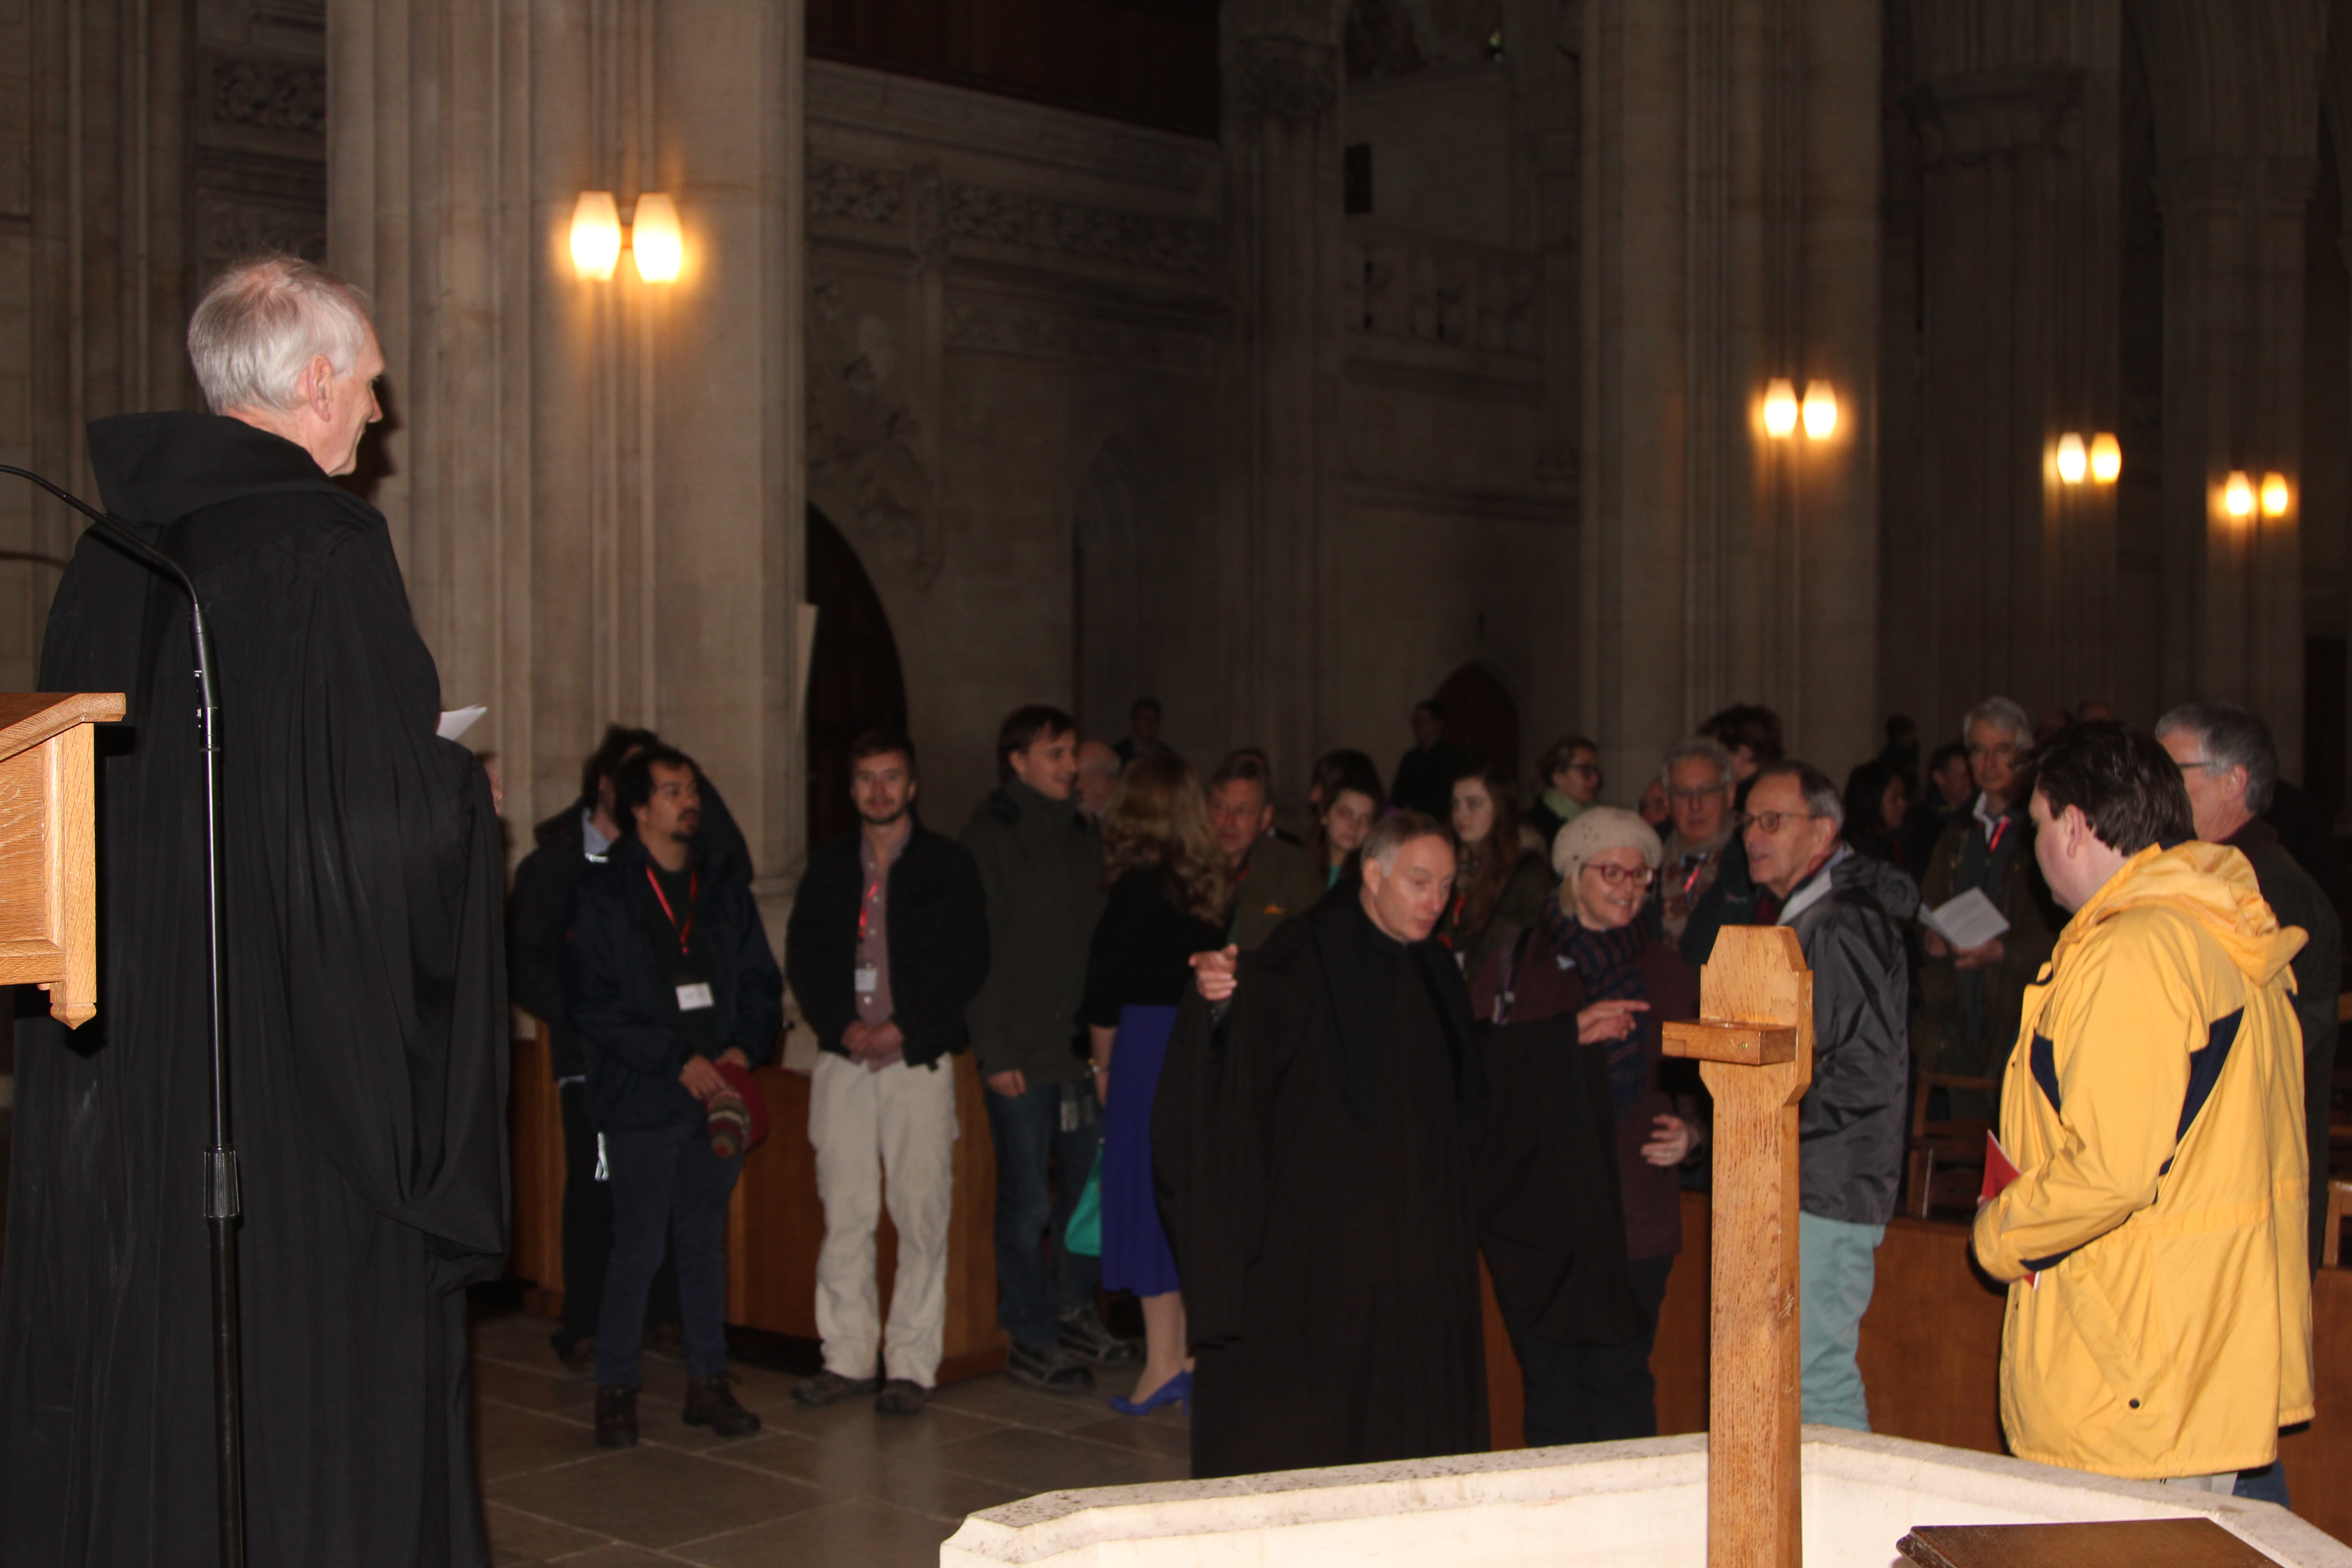 Easter at Downside Abbey